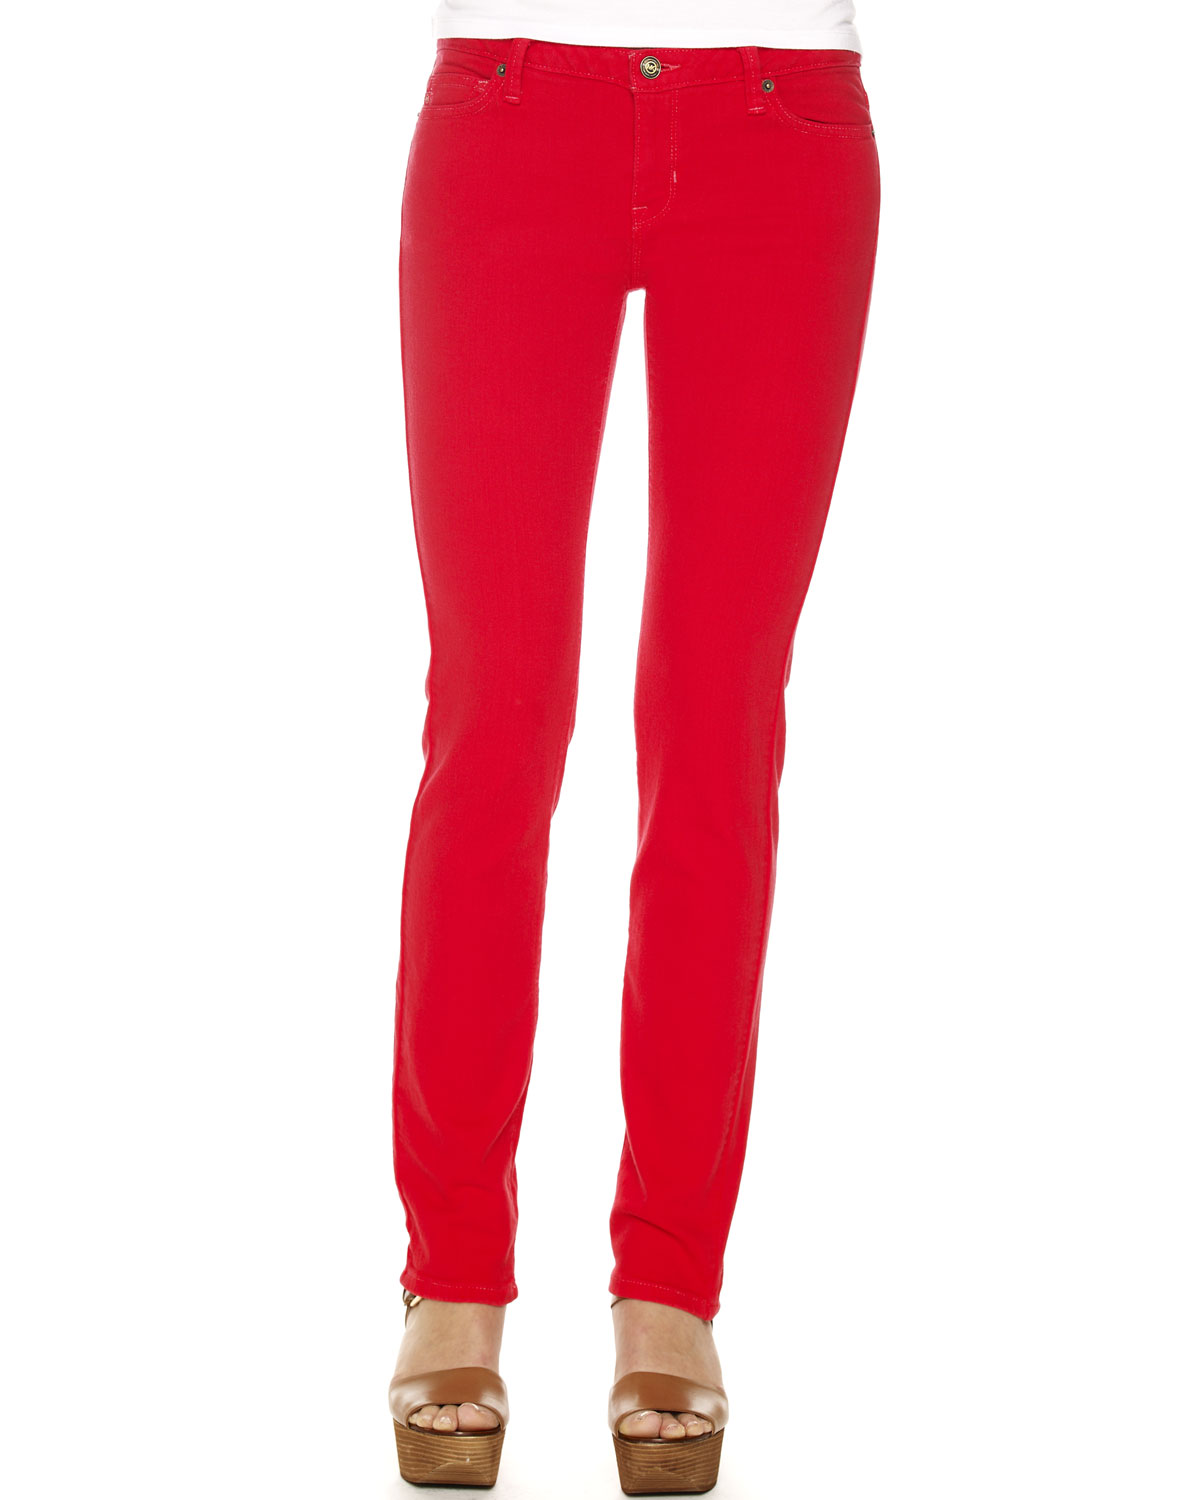 Michael kors Colored Skinny Jeans in Red | Lyst